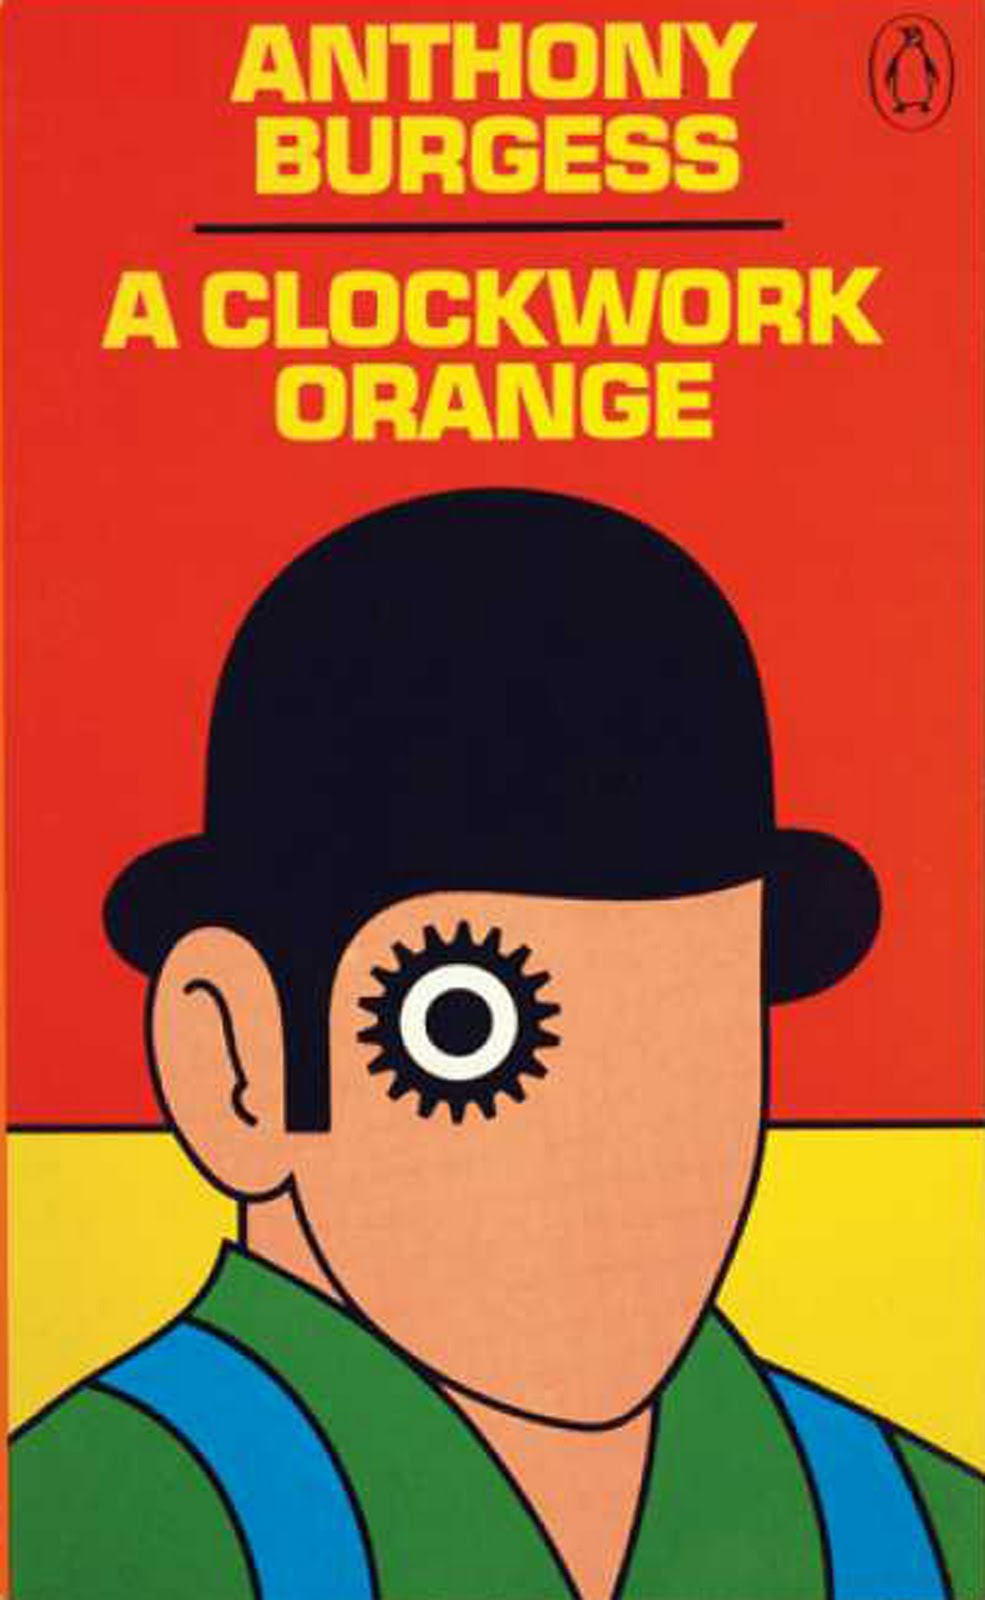 Cool Book Cover Uk ~ Clockwork orange book cover poster yes please